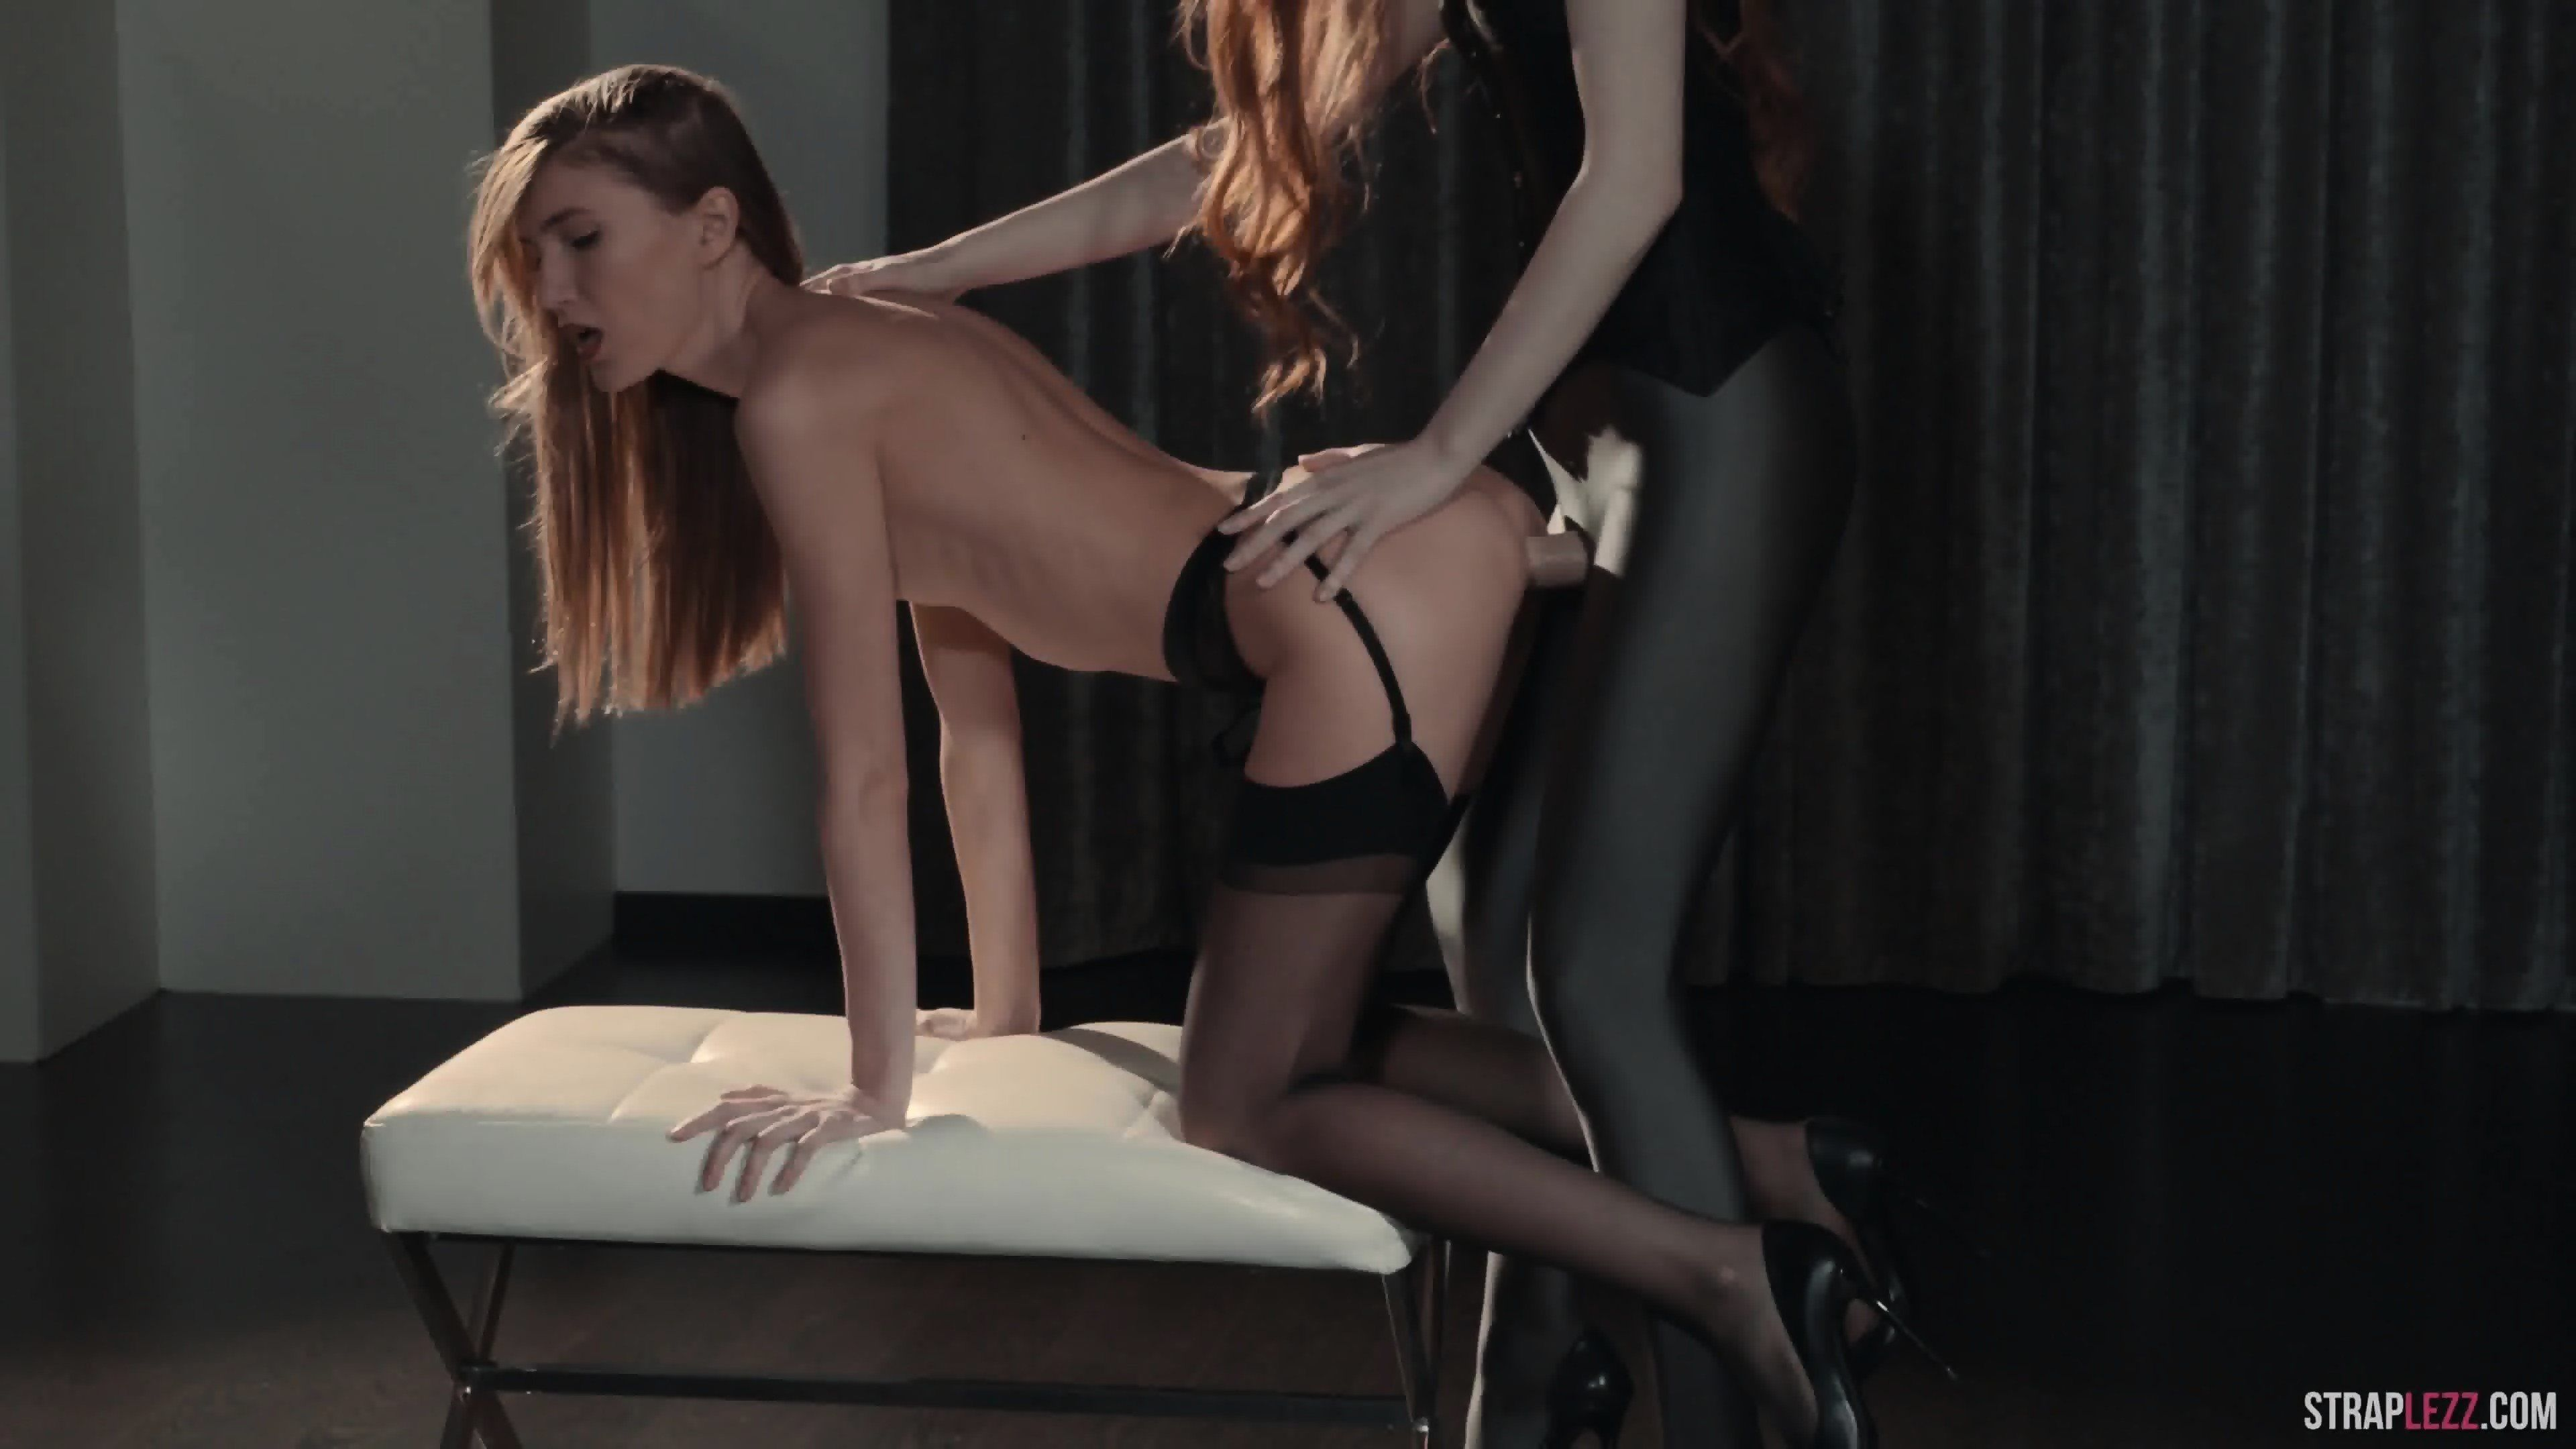 French wife video